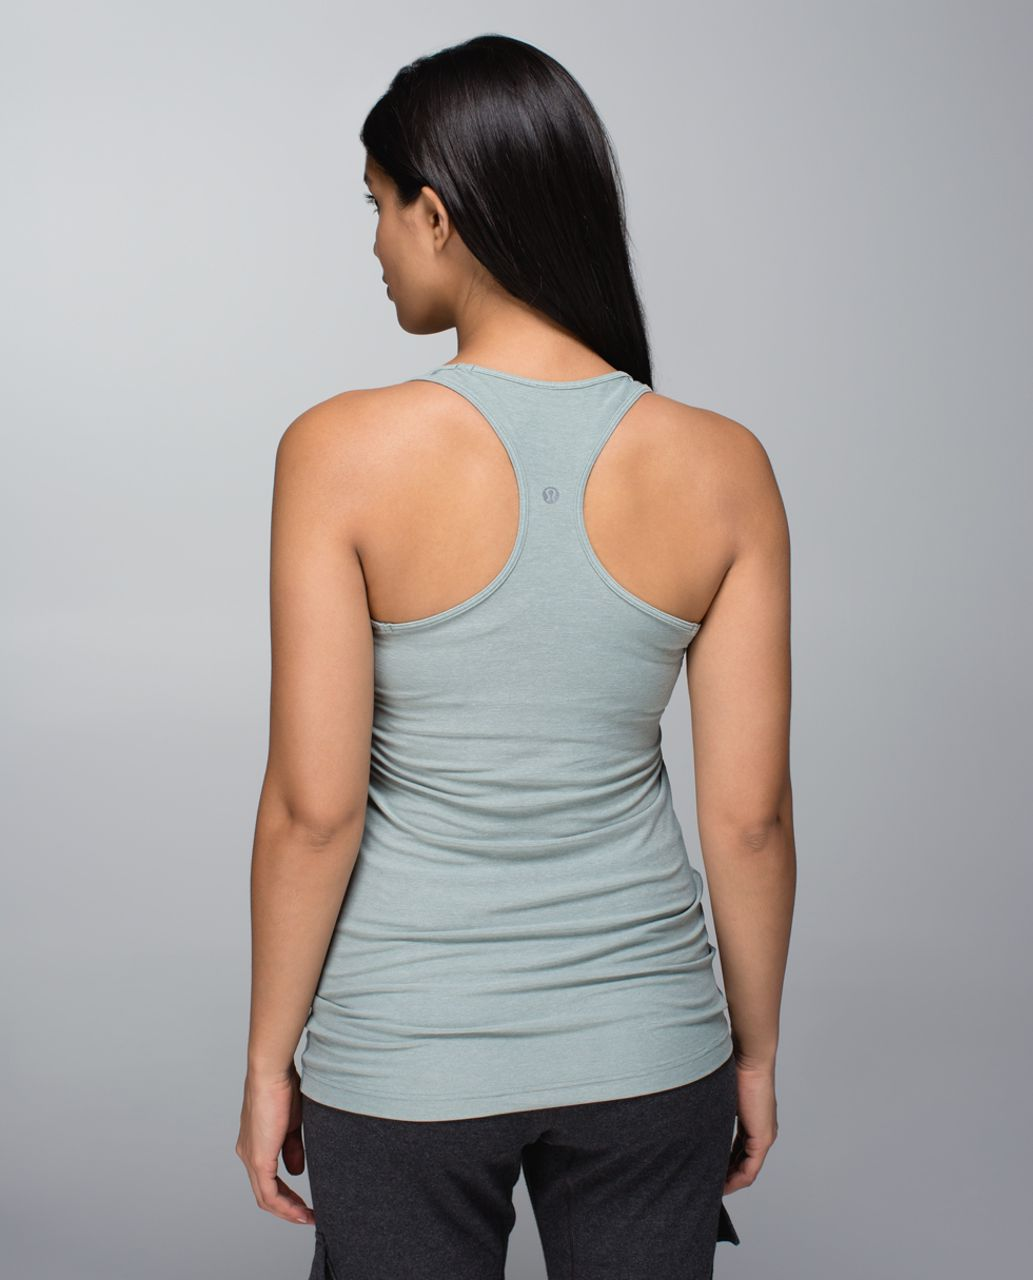 Lululemon Cool Racerback - Heathered Earl Grey